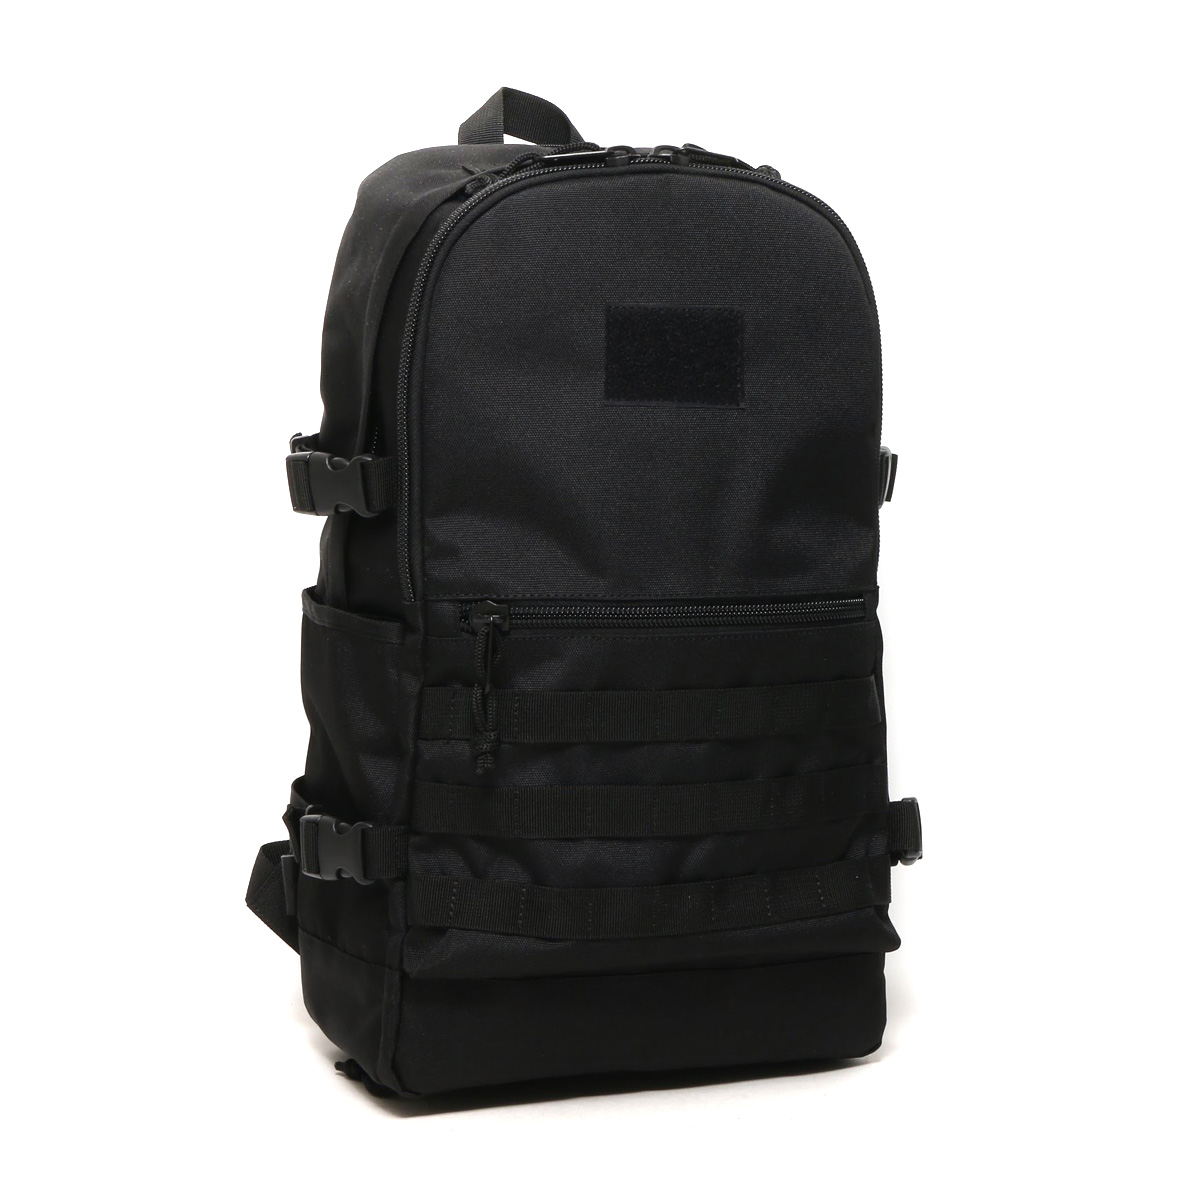 ATMOS LAB x MAKAVELIC ASSAULT BACKPACK(アトモスラボ x マキャべリック アサルトバックパック)(BLACK)18SP-S